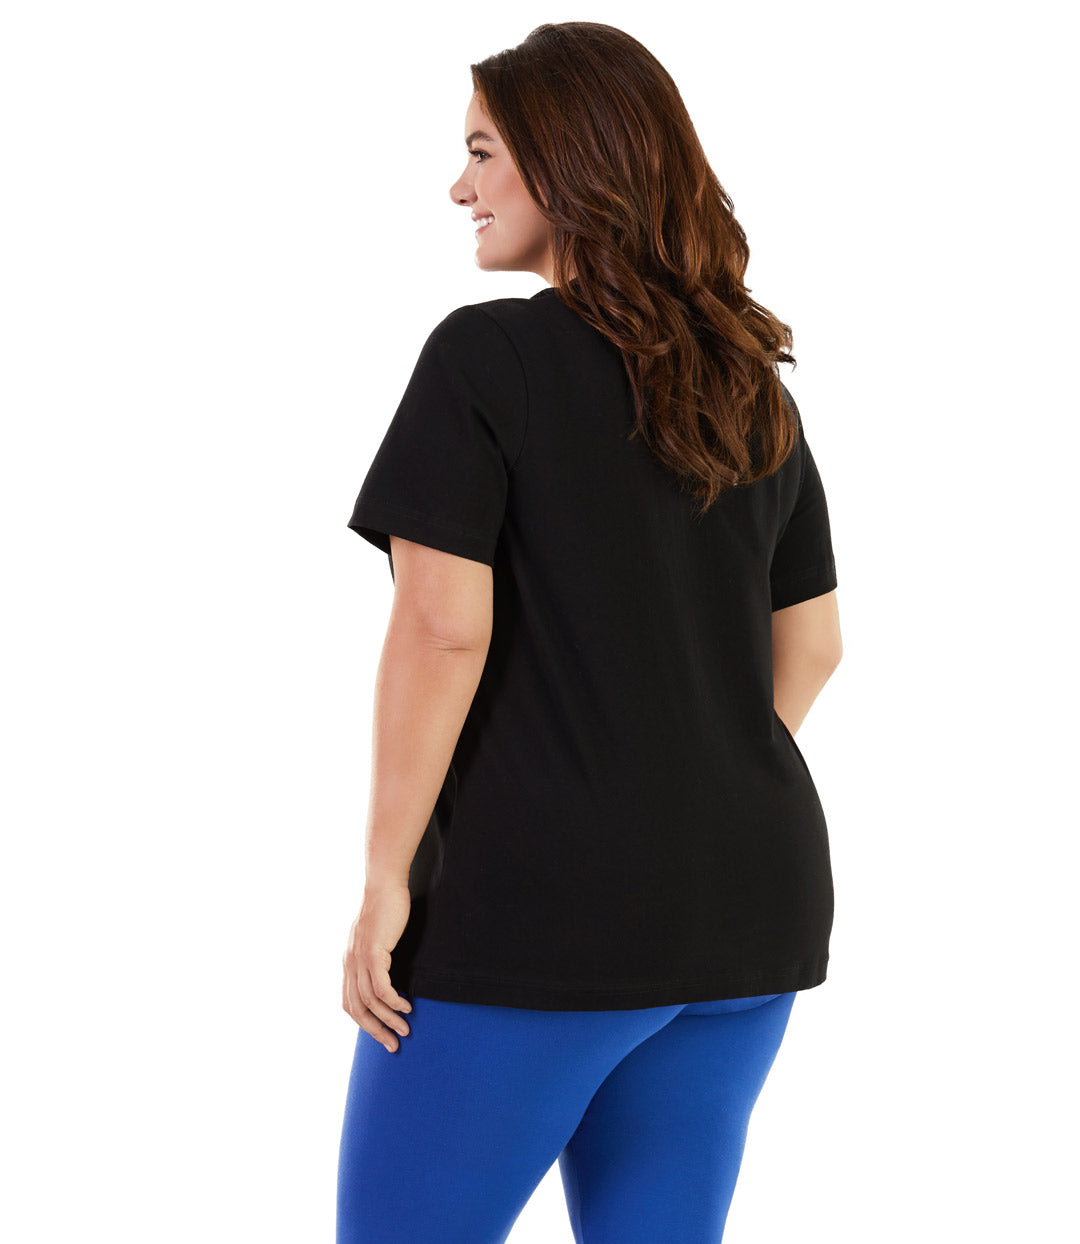 plus size activewear top black